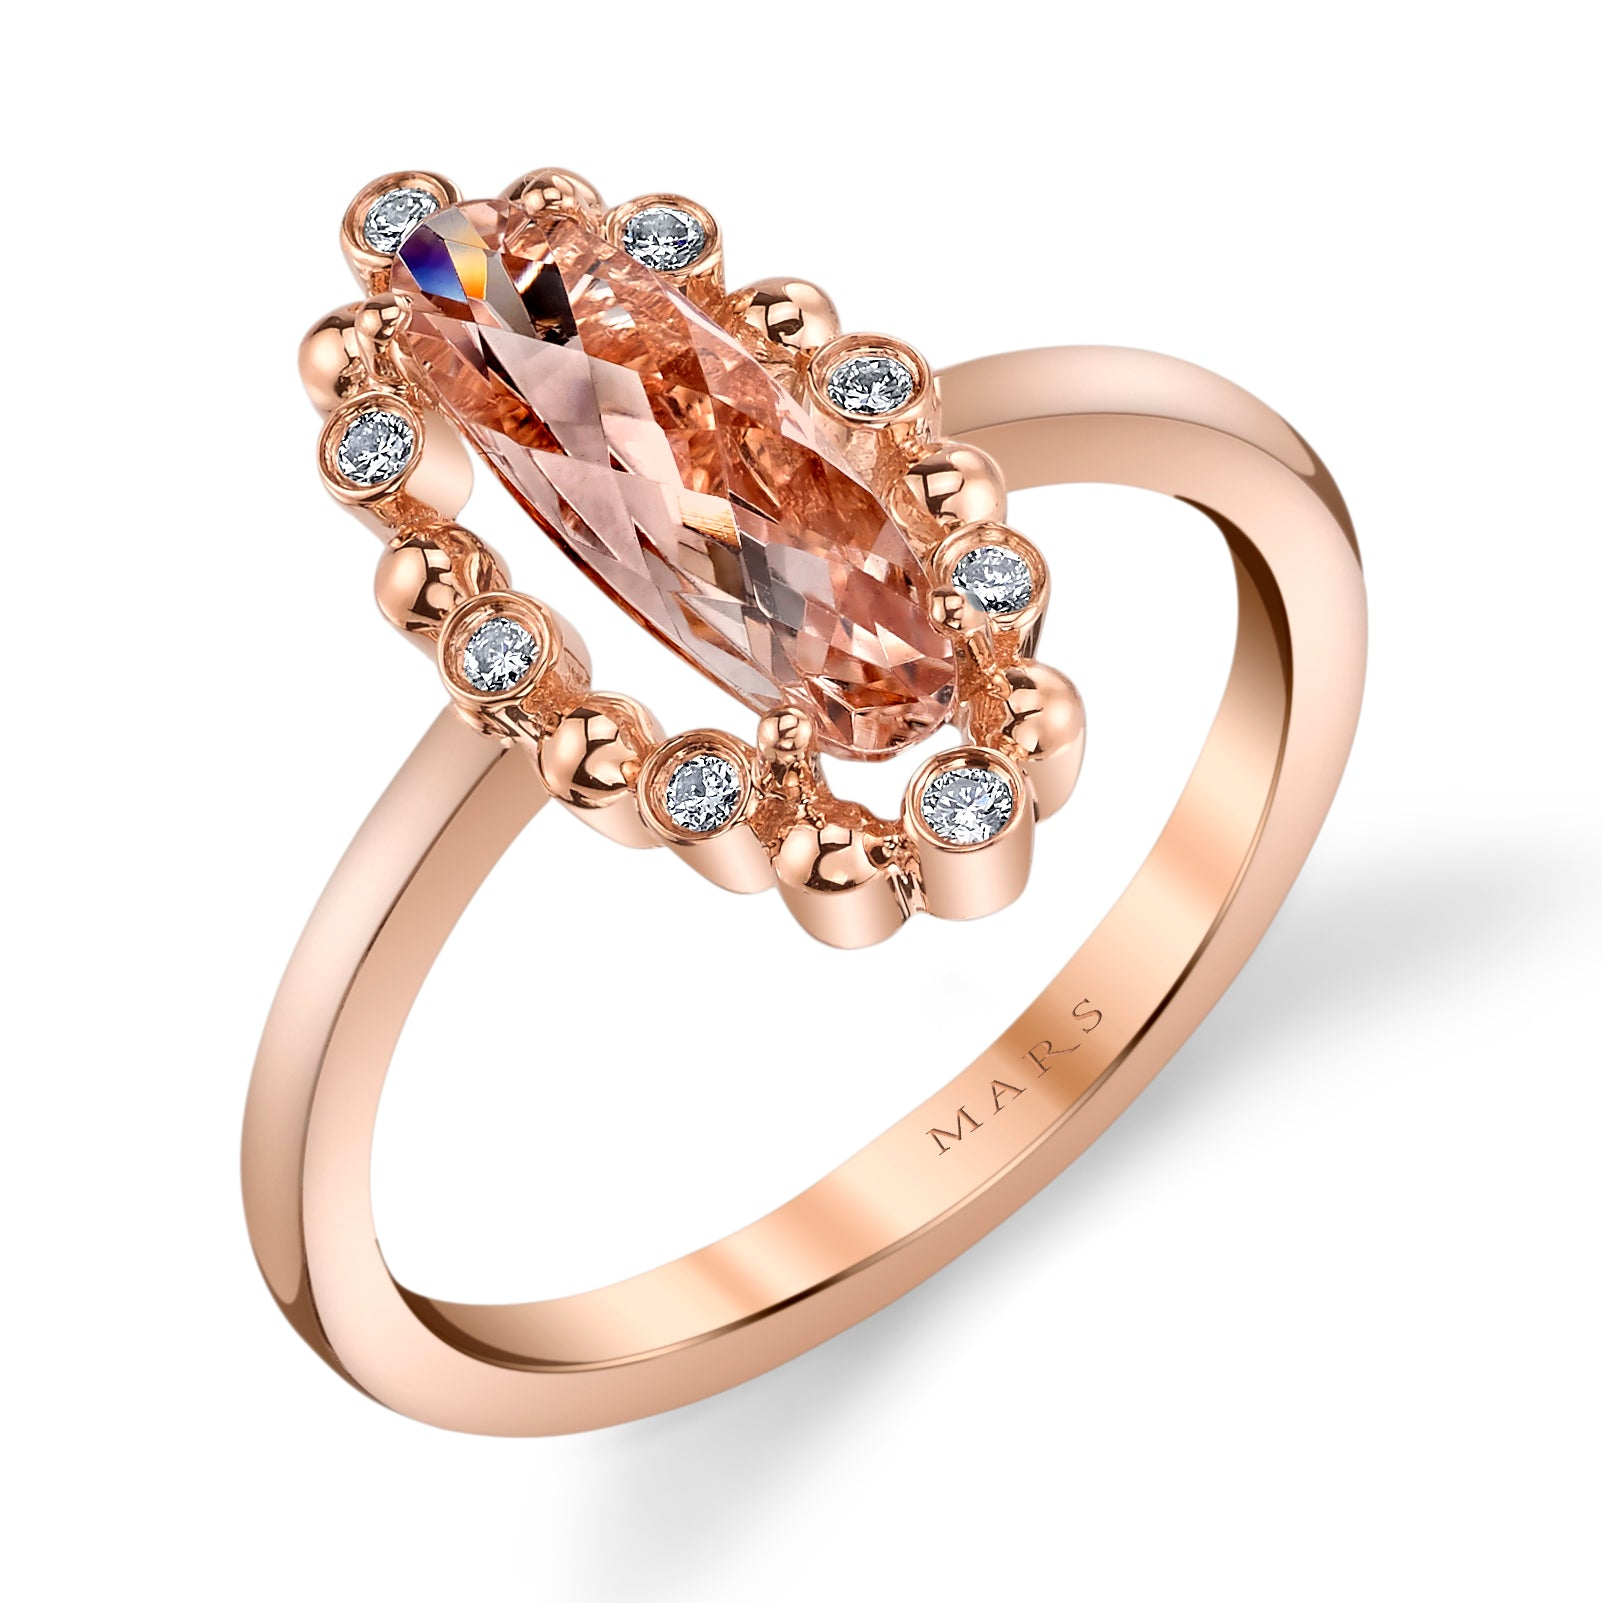 Mars Jewelry 14K Rose Gold Fashion Ring w/ Bezel Set Diamonds & Blush Pink Morganite 26932